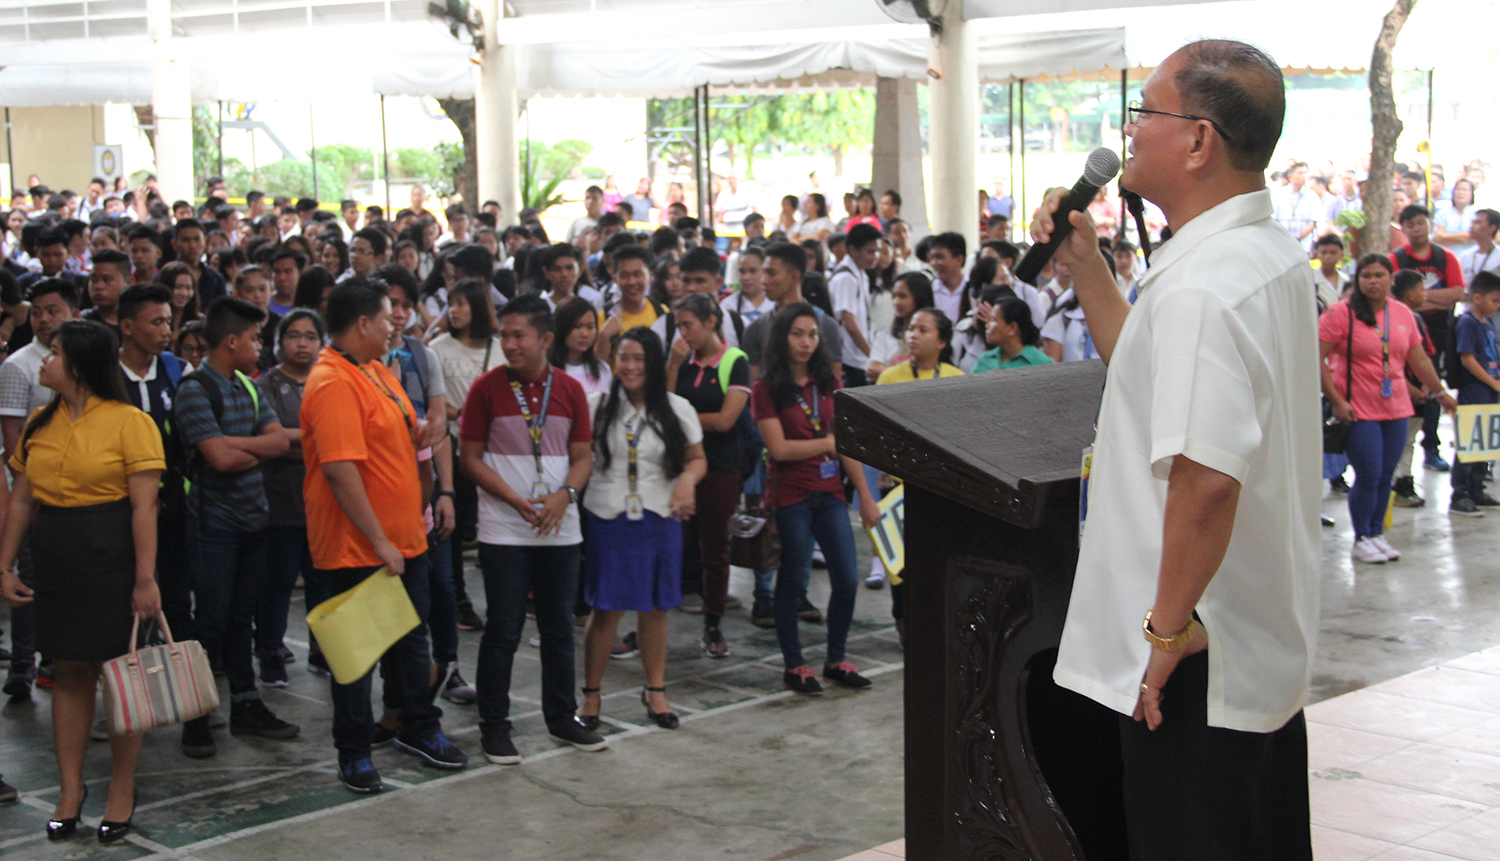 Dr. Raul F. Muyong welcomes the students, faculty, staff and parents on the first day of classes for Academic Year 2017-2018 on june 7, 2017